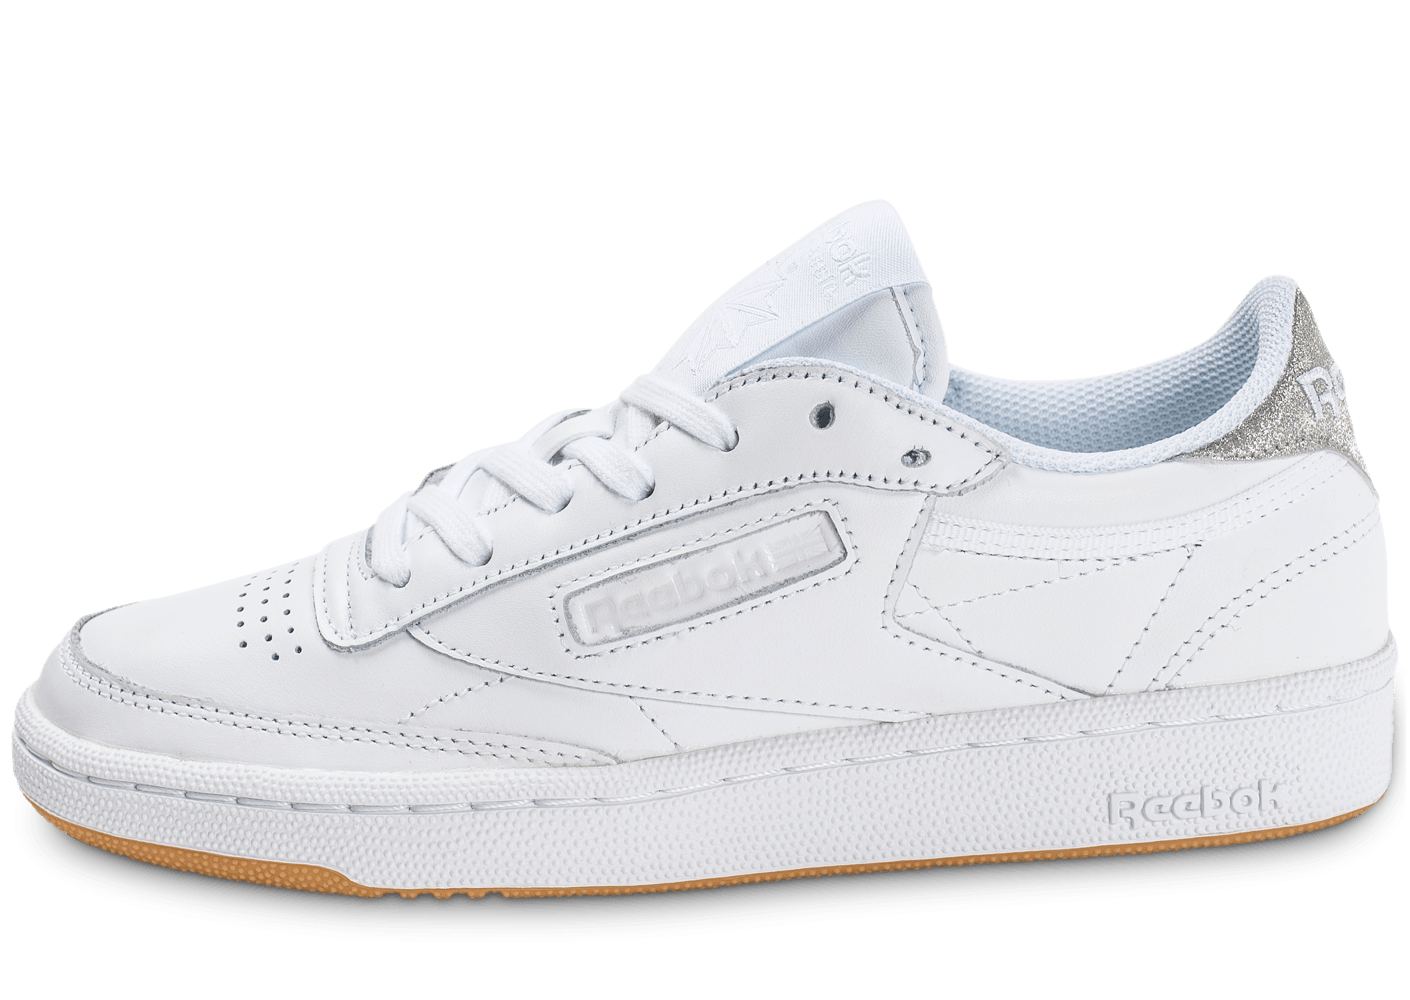 reebok club c 85 diamond blanche chaussures femme chausport. Black Bedroom Furniture Sets. Home Design Ideas